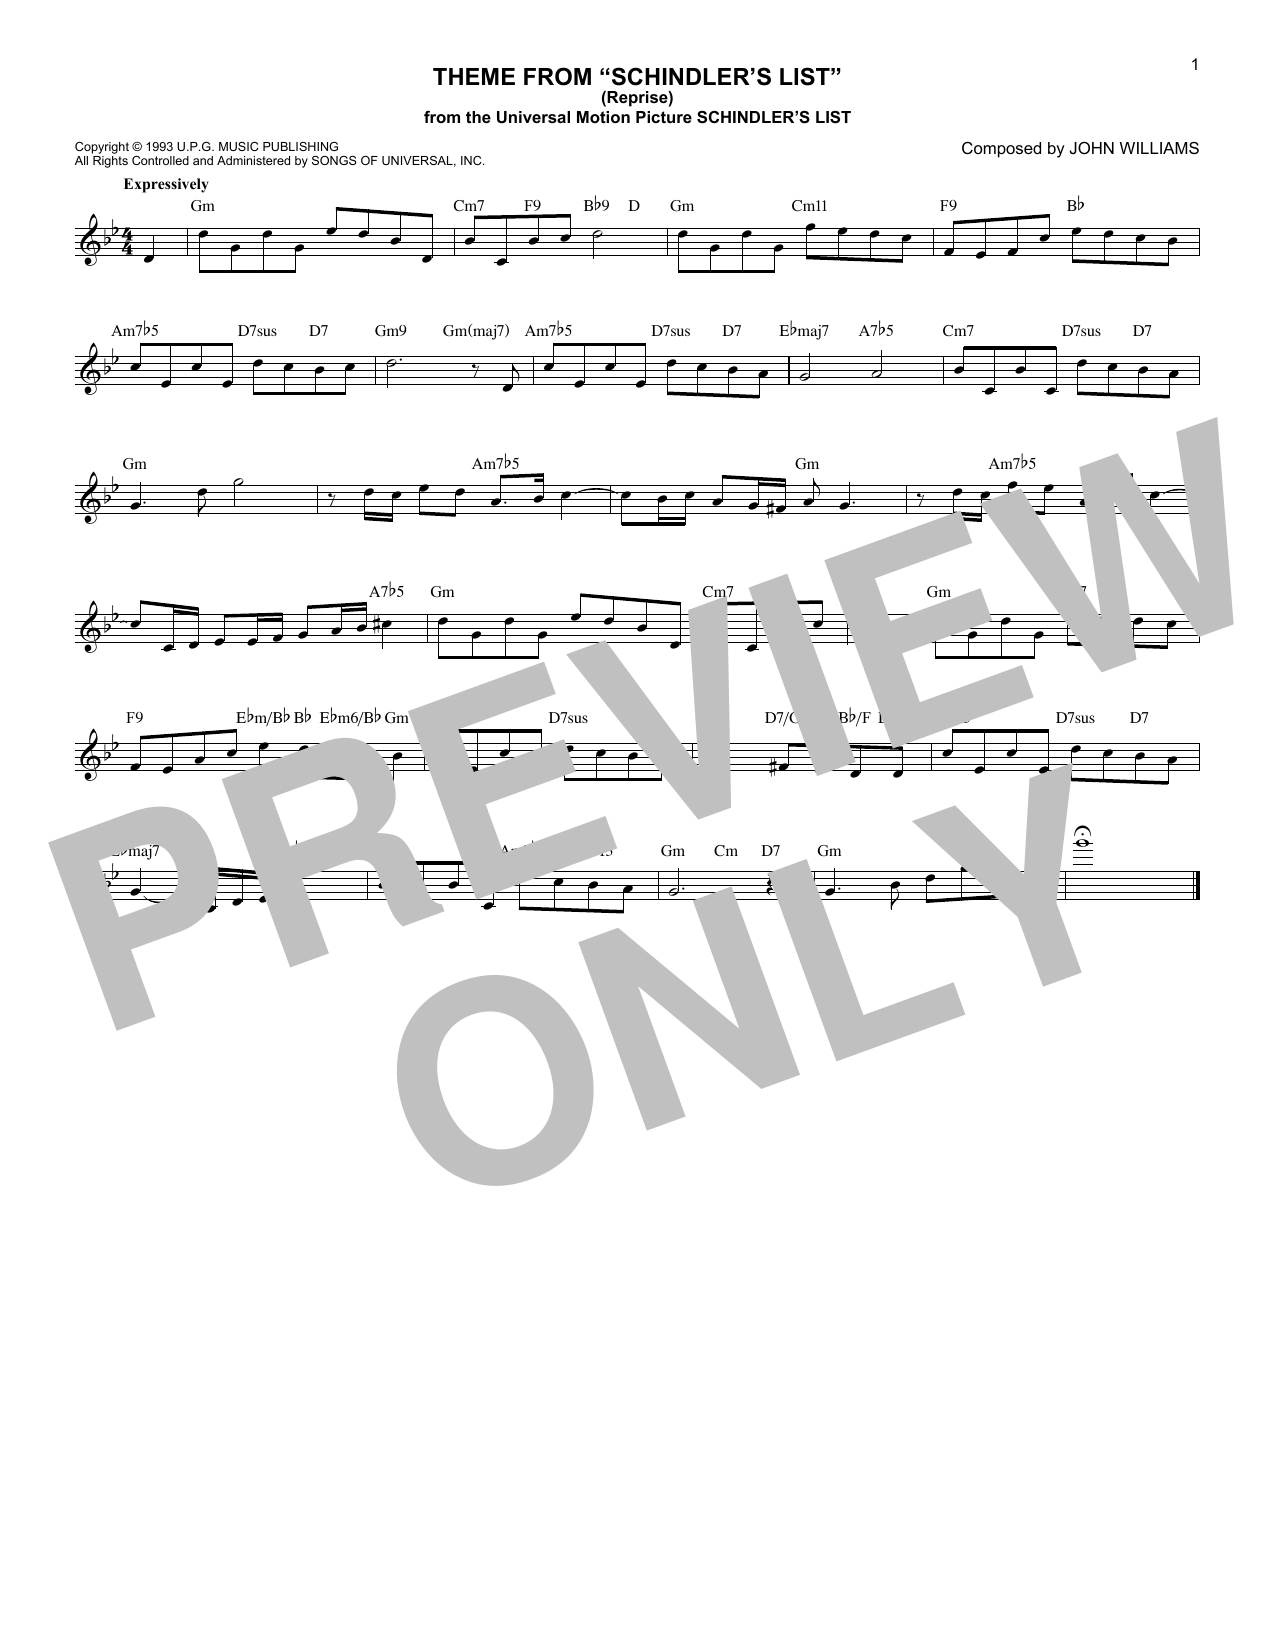 John Williams Theme From Schindler's List (Reprise) sheet music notes and chords. Download Printable PDF.